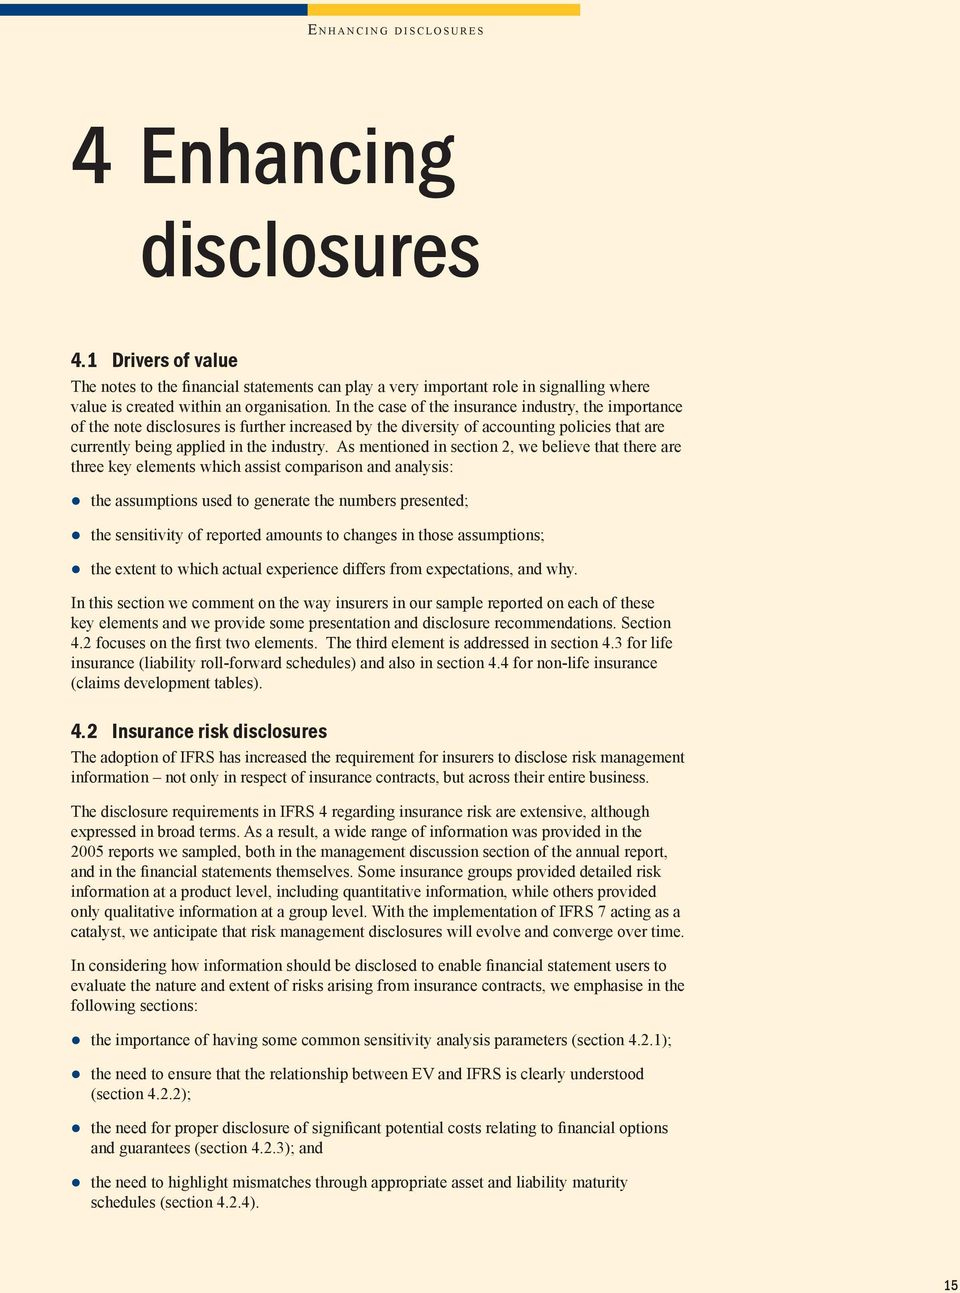 In the case of the insurance industry, the importance of the note disclosures is further increased by the diversity of accounting policies that are currently being applied in the industry.